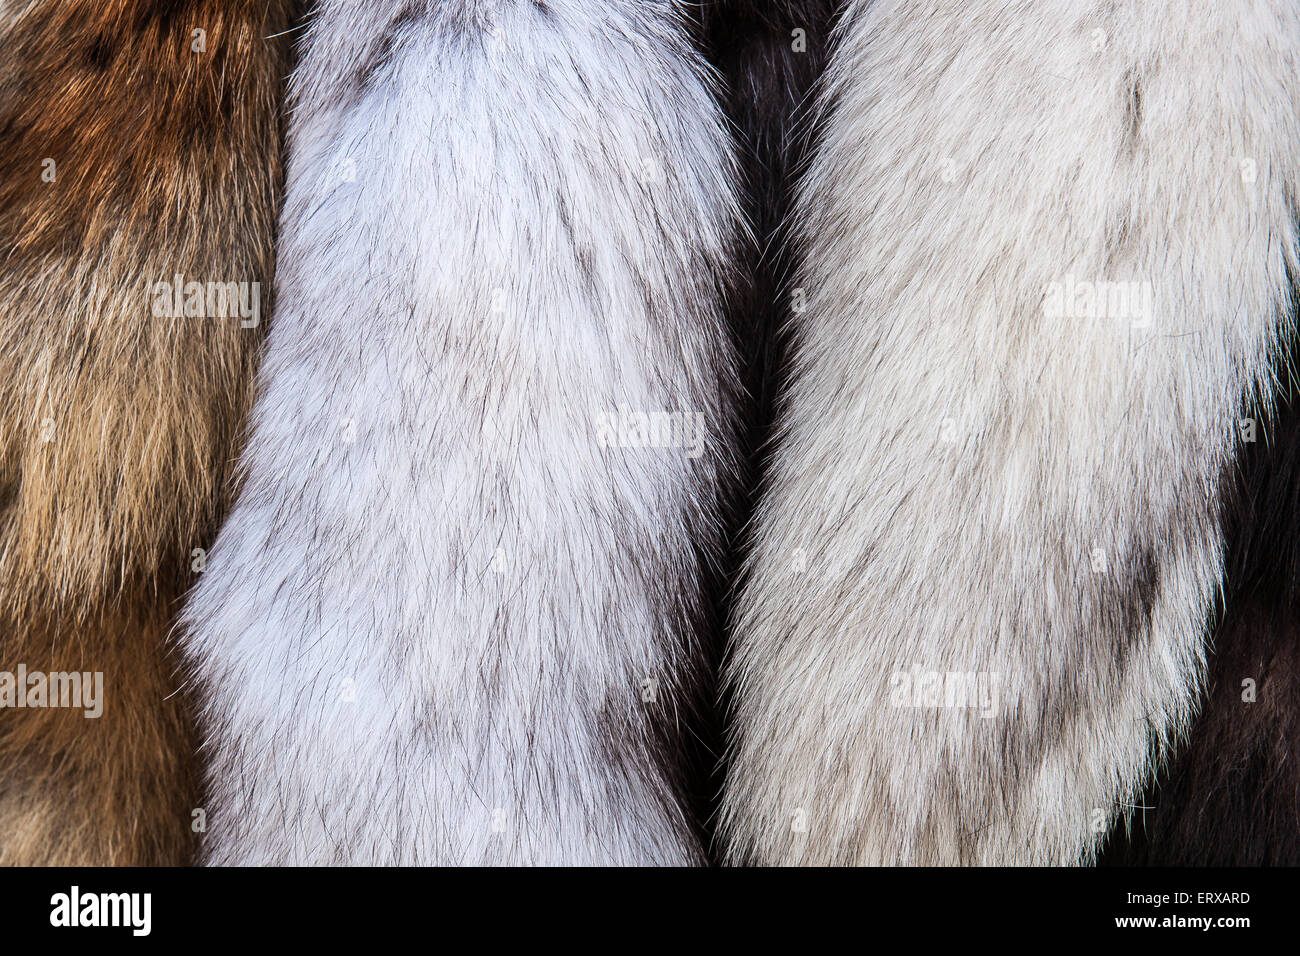 Furs on display for sale at the Roman history festival - Stock Image